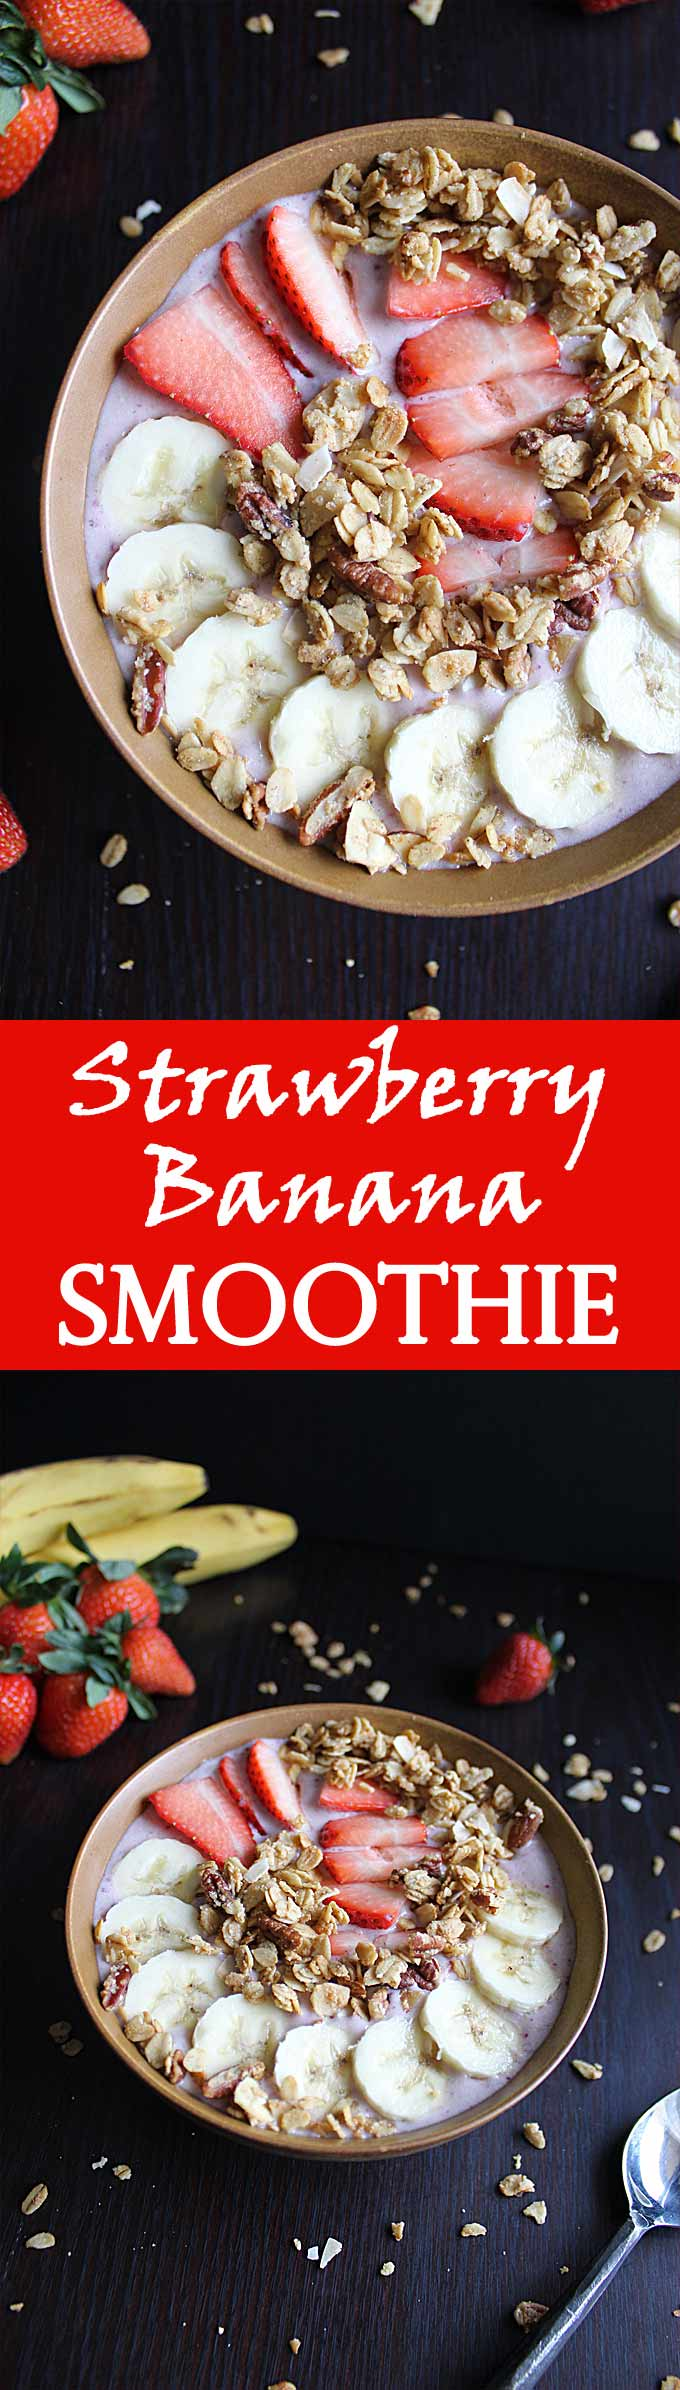 Healthy Strawberry Banana Smoothie Bowl | Protein Smoothie | Without Yogurt | Low Calorie | Breakfast | Post Workout | Recipe